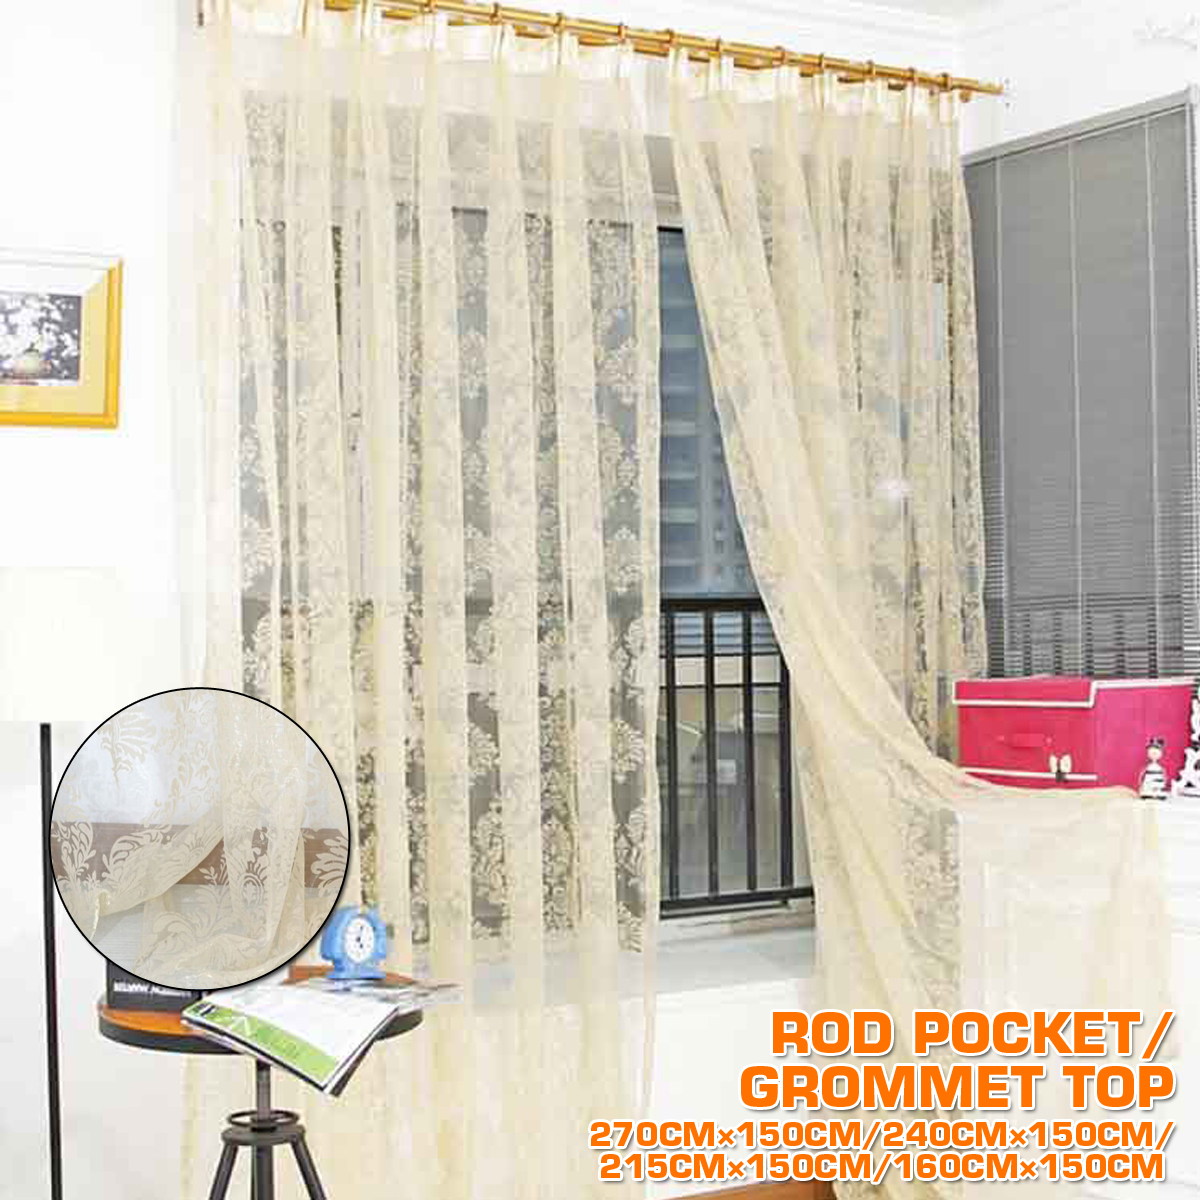 Lifegroceryllc Rod Pocket Floral Lace Sheer Curtain Panel 2 Pack Sheer Window Treatment Rod Pocket Curtain Panels For Bedroom And Living Room 59 X 85 Inches Long Walmart Com Walmart Com